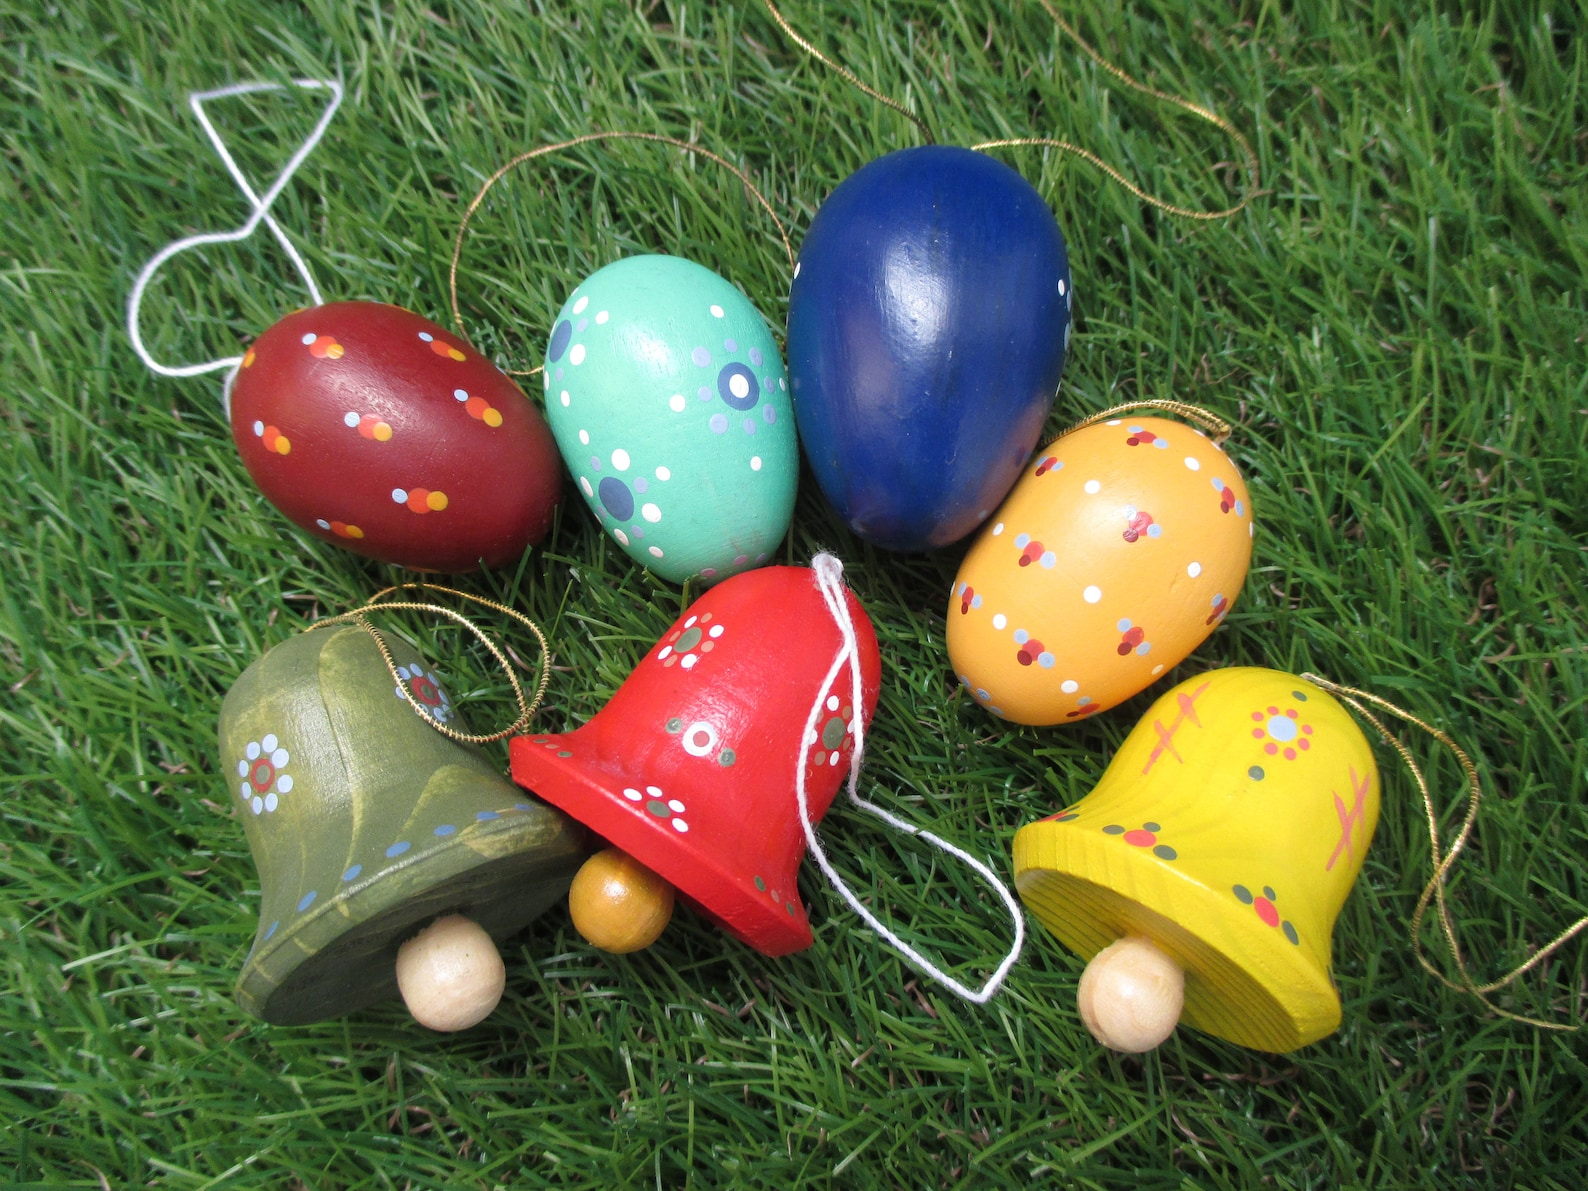 Easter Bells Ornaments Vintage German Folk Art Easter Eggs Painted Wood Handmade Hanging Ornaments like Erzgeibirge